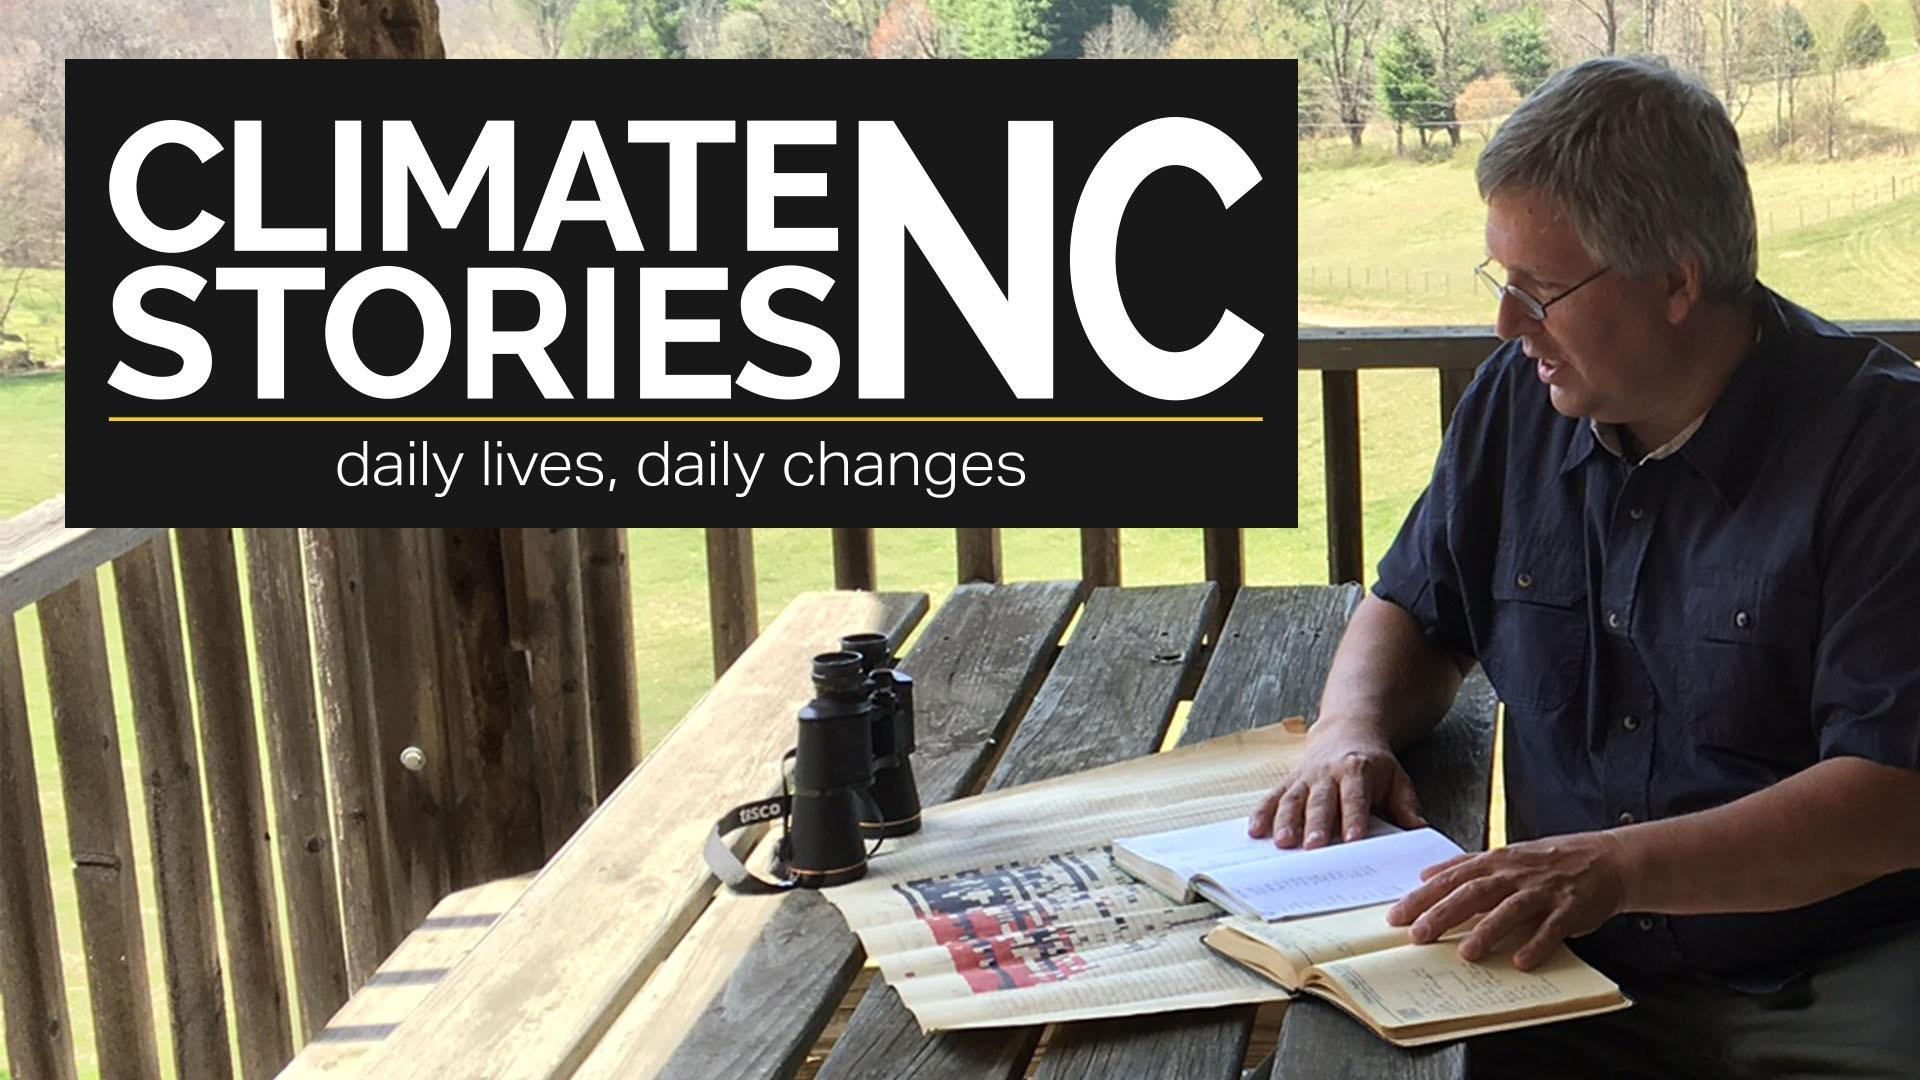 Climate Stories NC